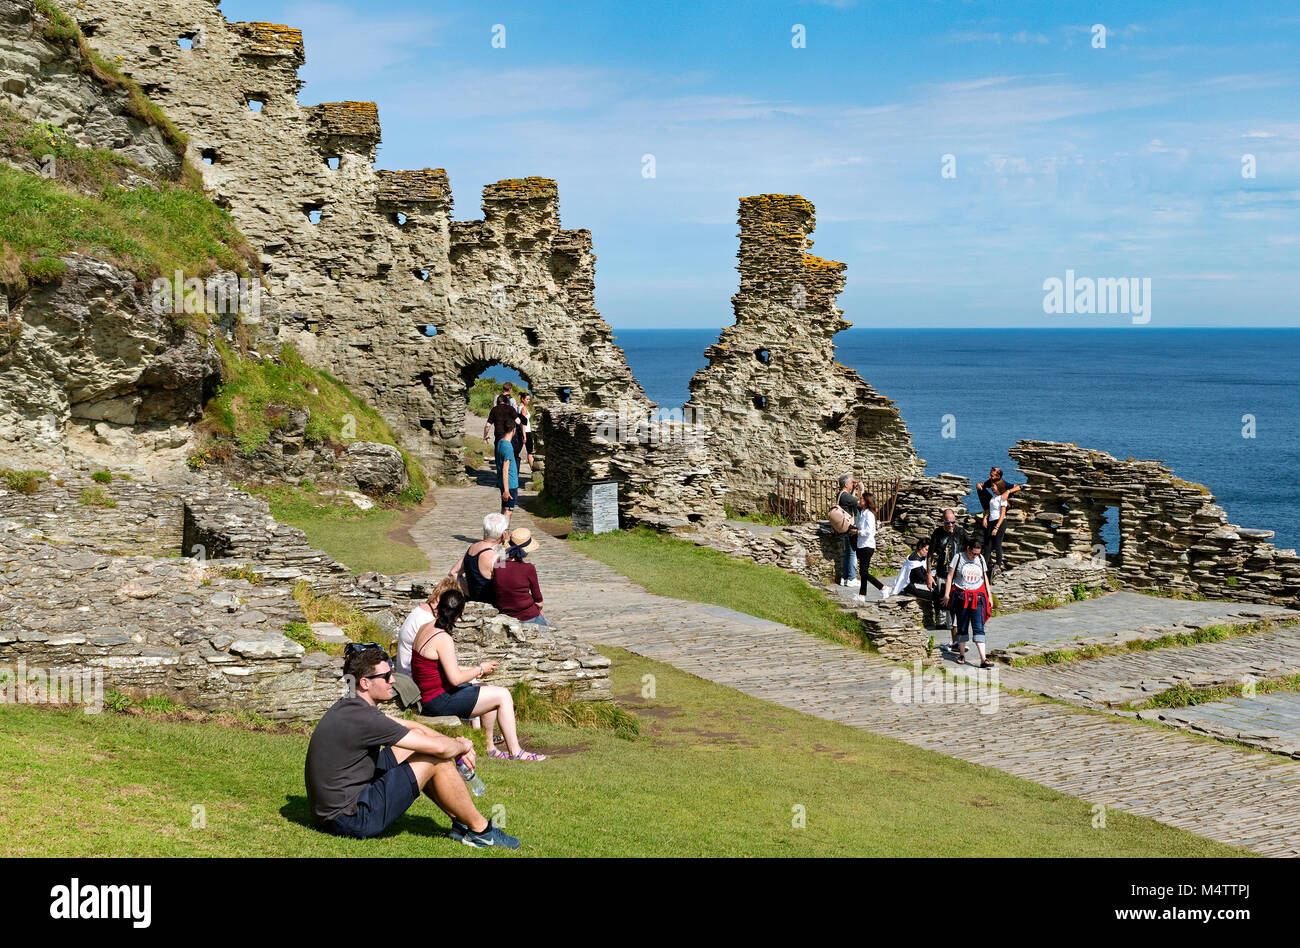 visitors at tintagel castle in north cornwall, england, britain, uk. - Stock Image